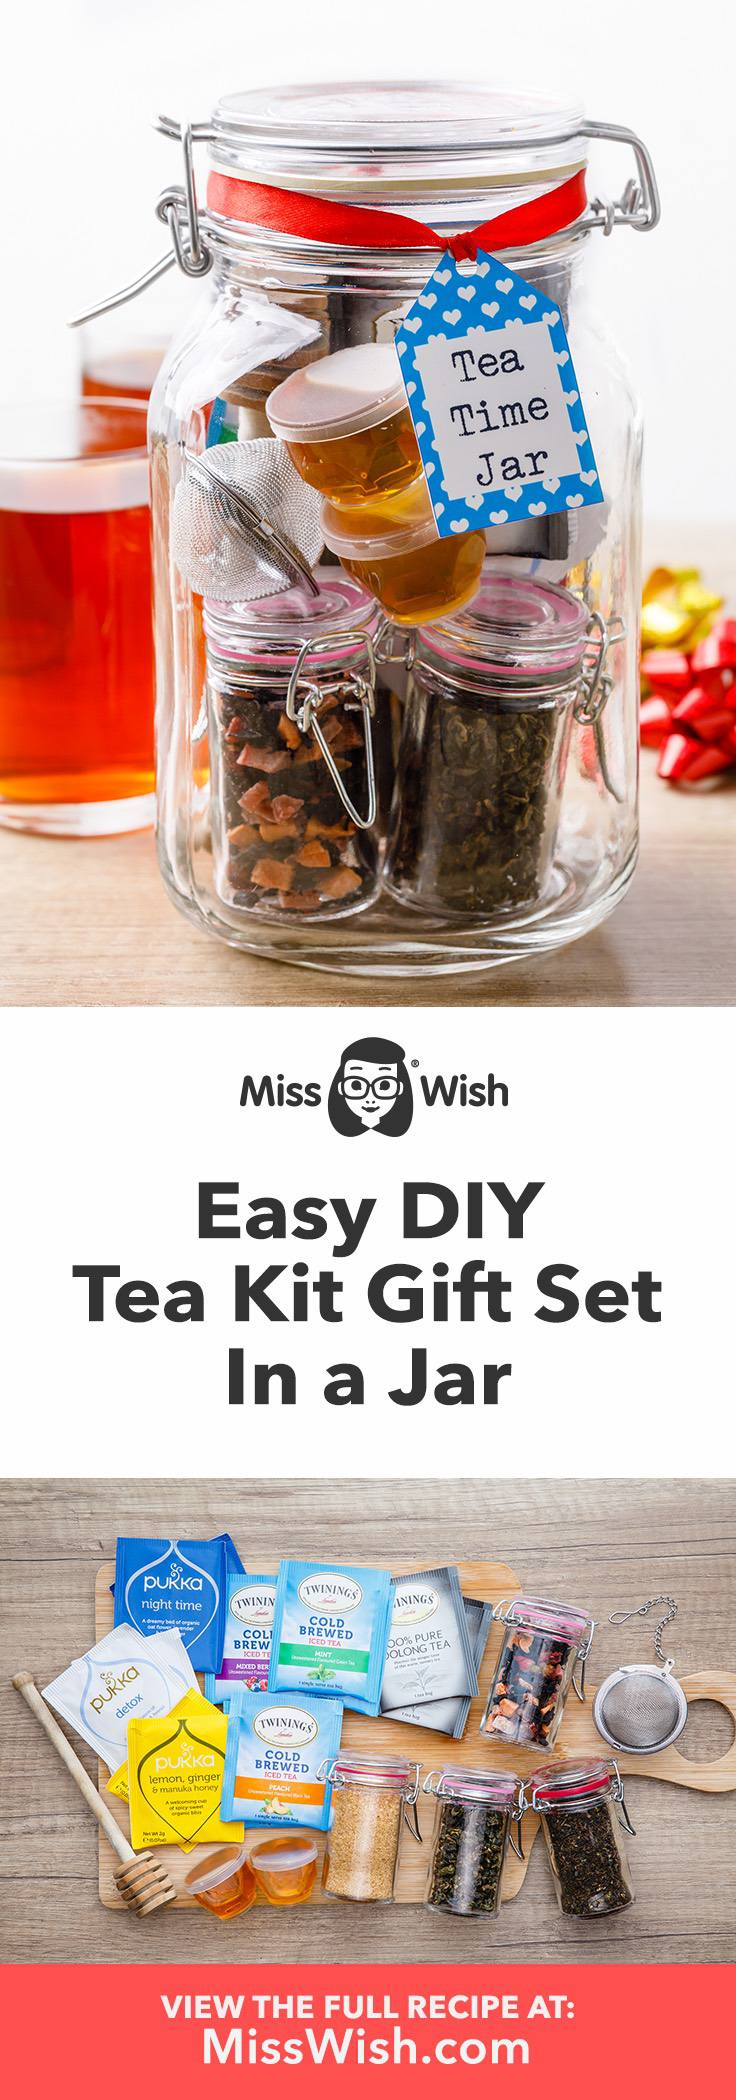 Easy diy tea kit gift for tea lovers.